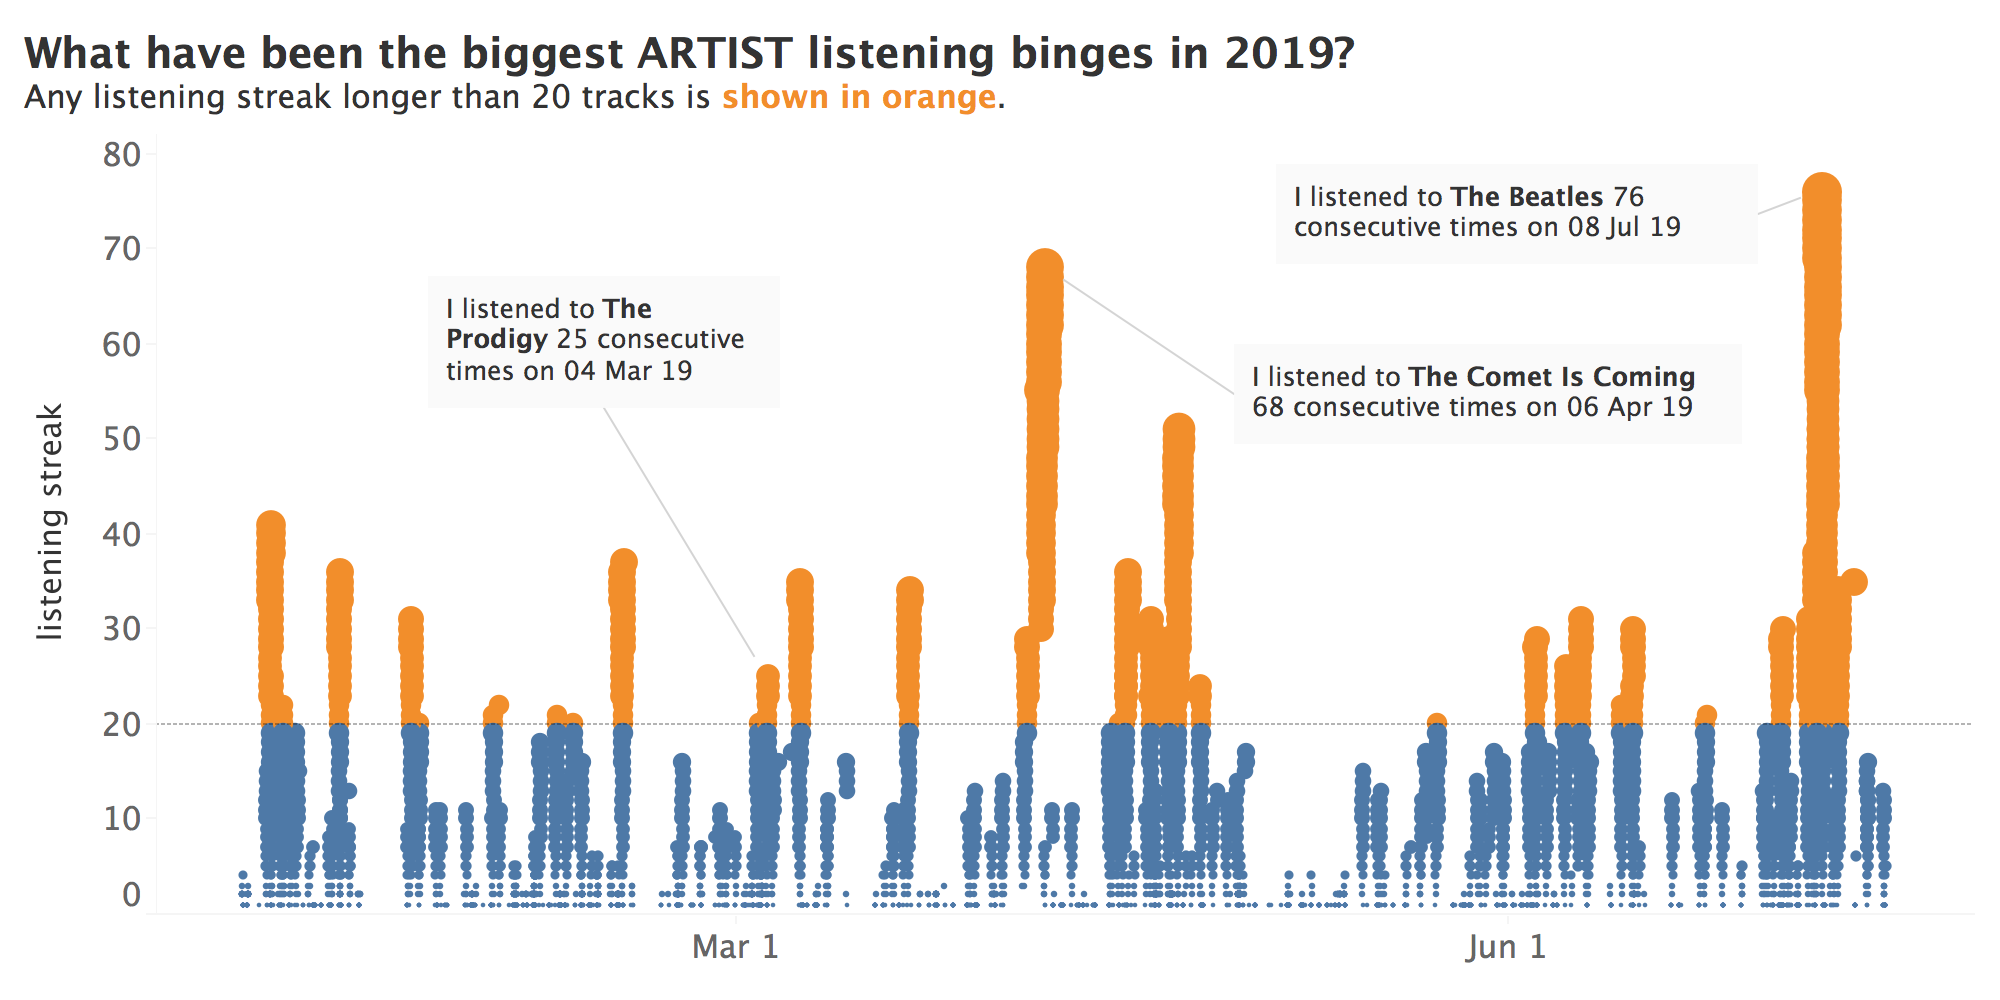 binge listens in andy cotgreave's last.fm scobbling data